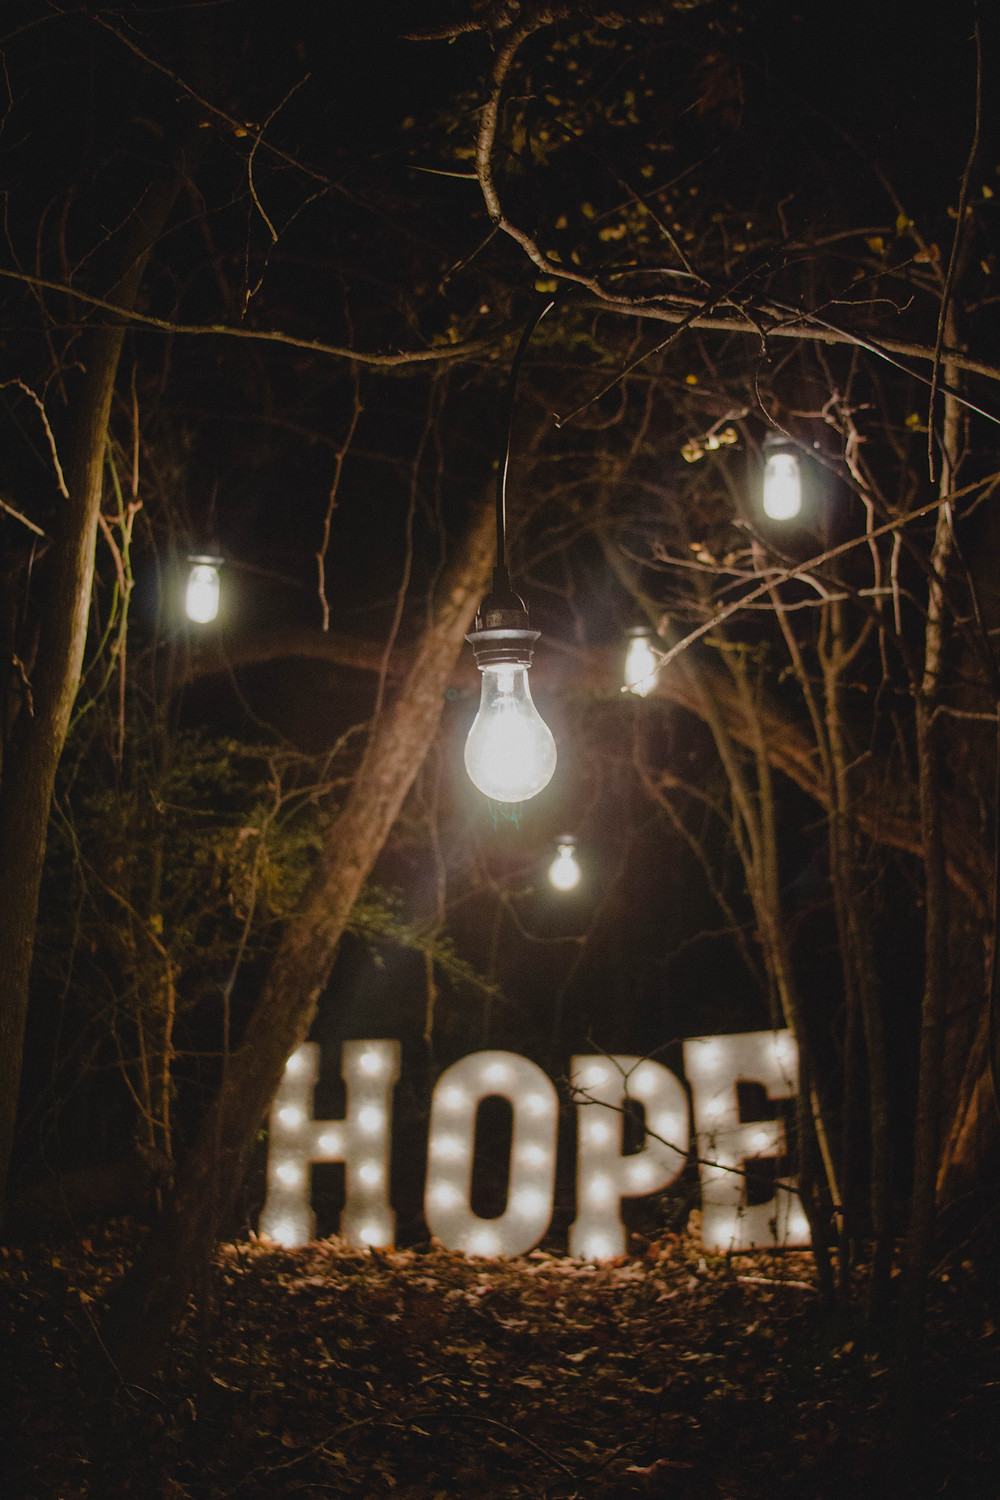 A dark forest with the word HOPE lit up